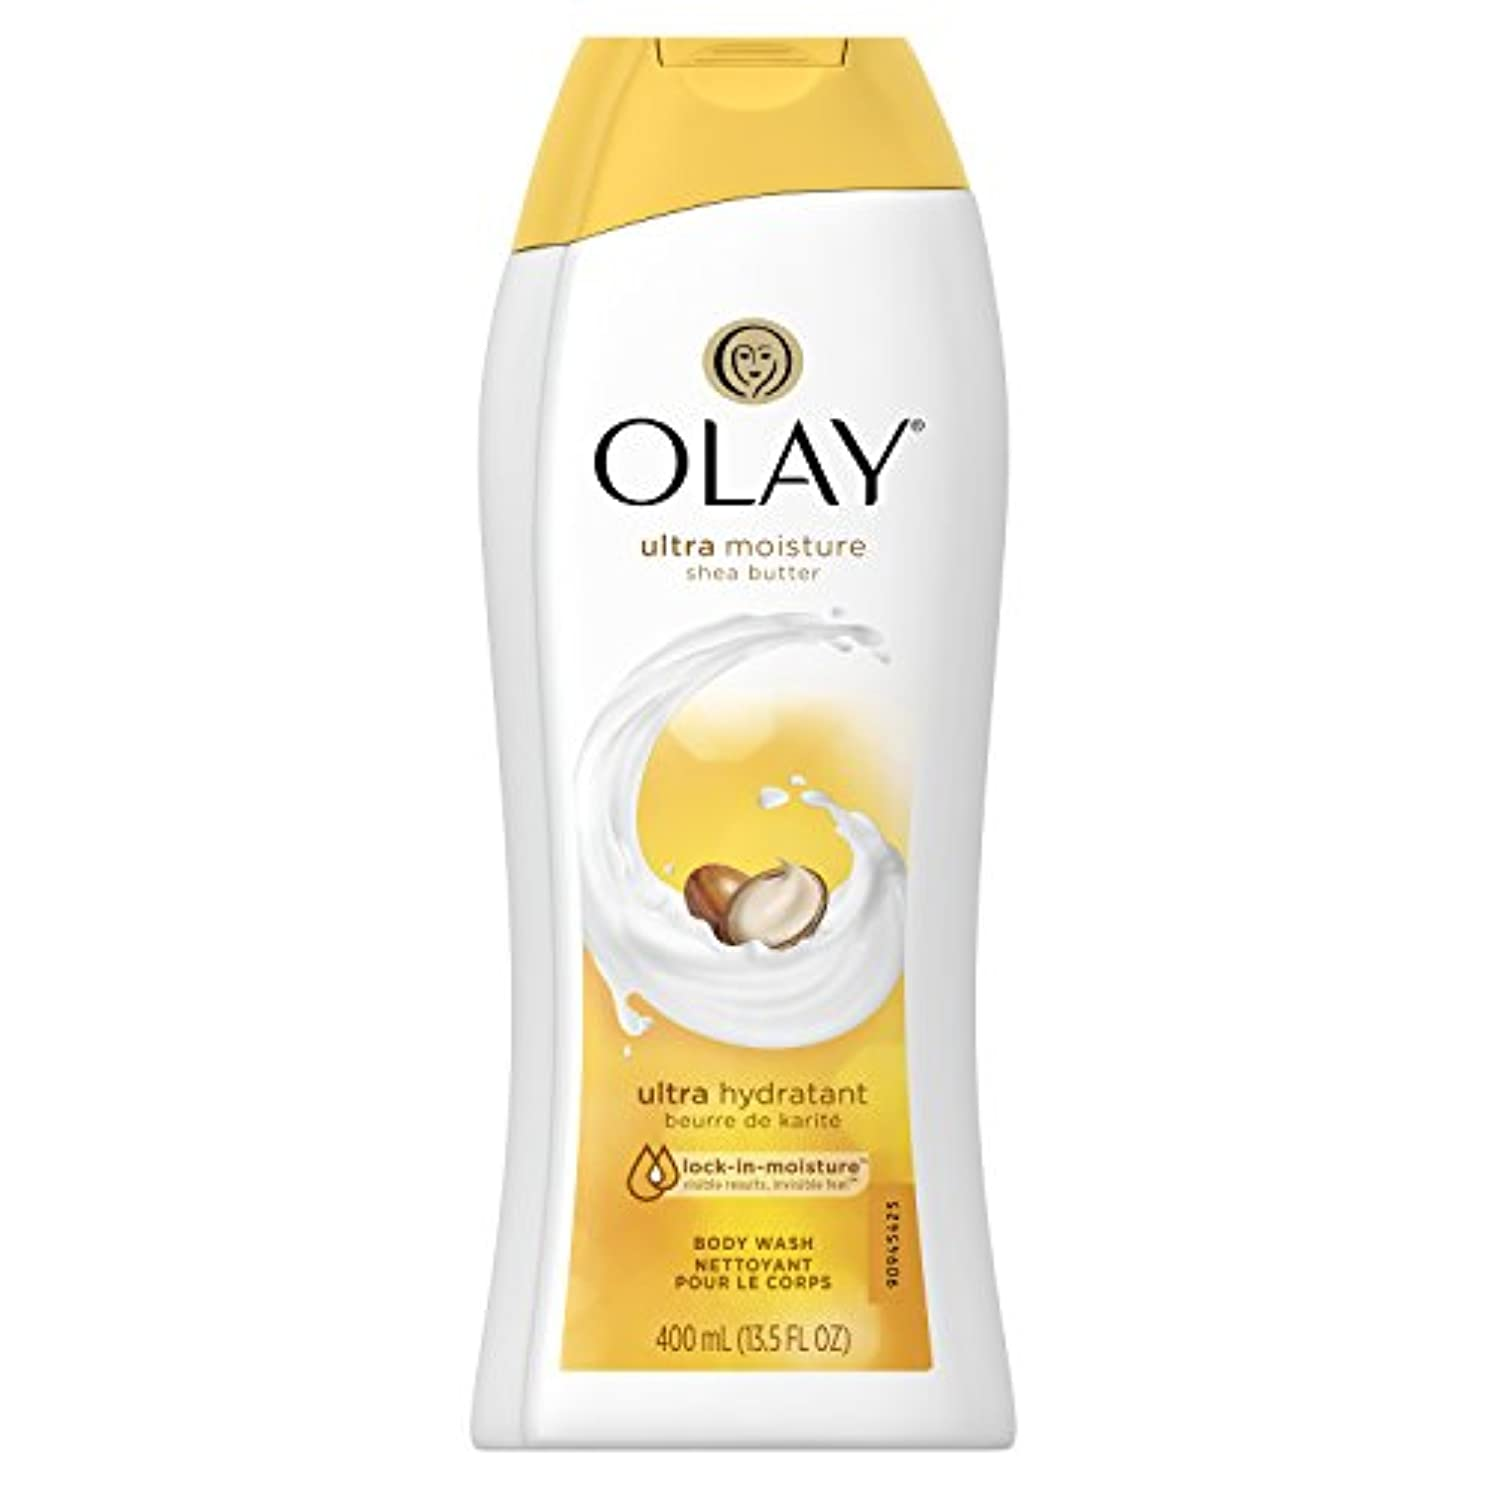 Olay Ultra Moisture Moisturizing Body Wash With Shea Butter, 13.5 oz. 2本セット